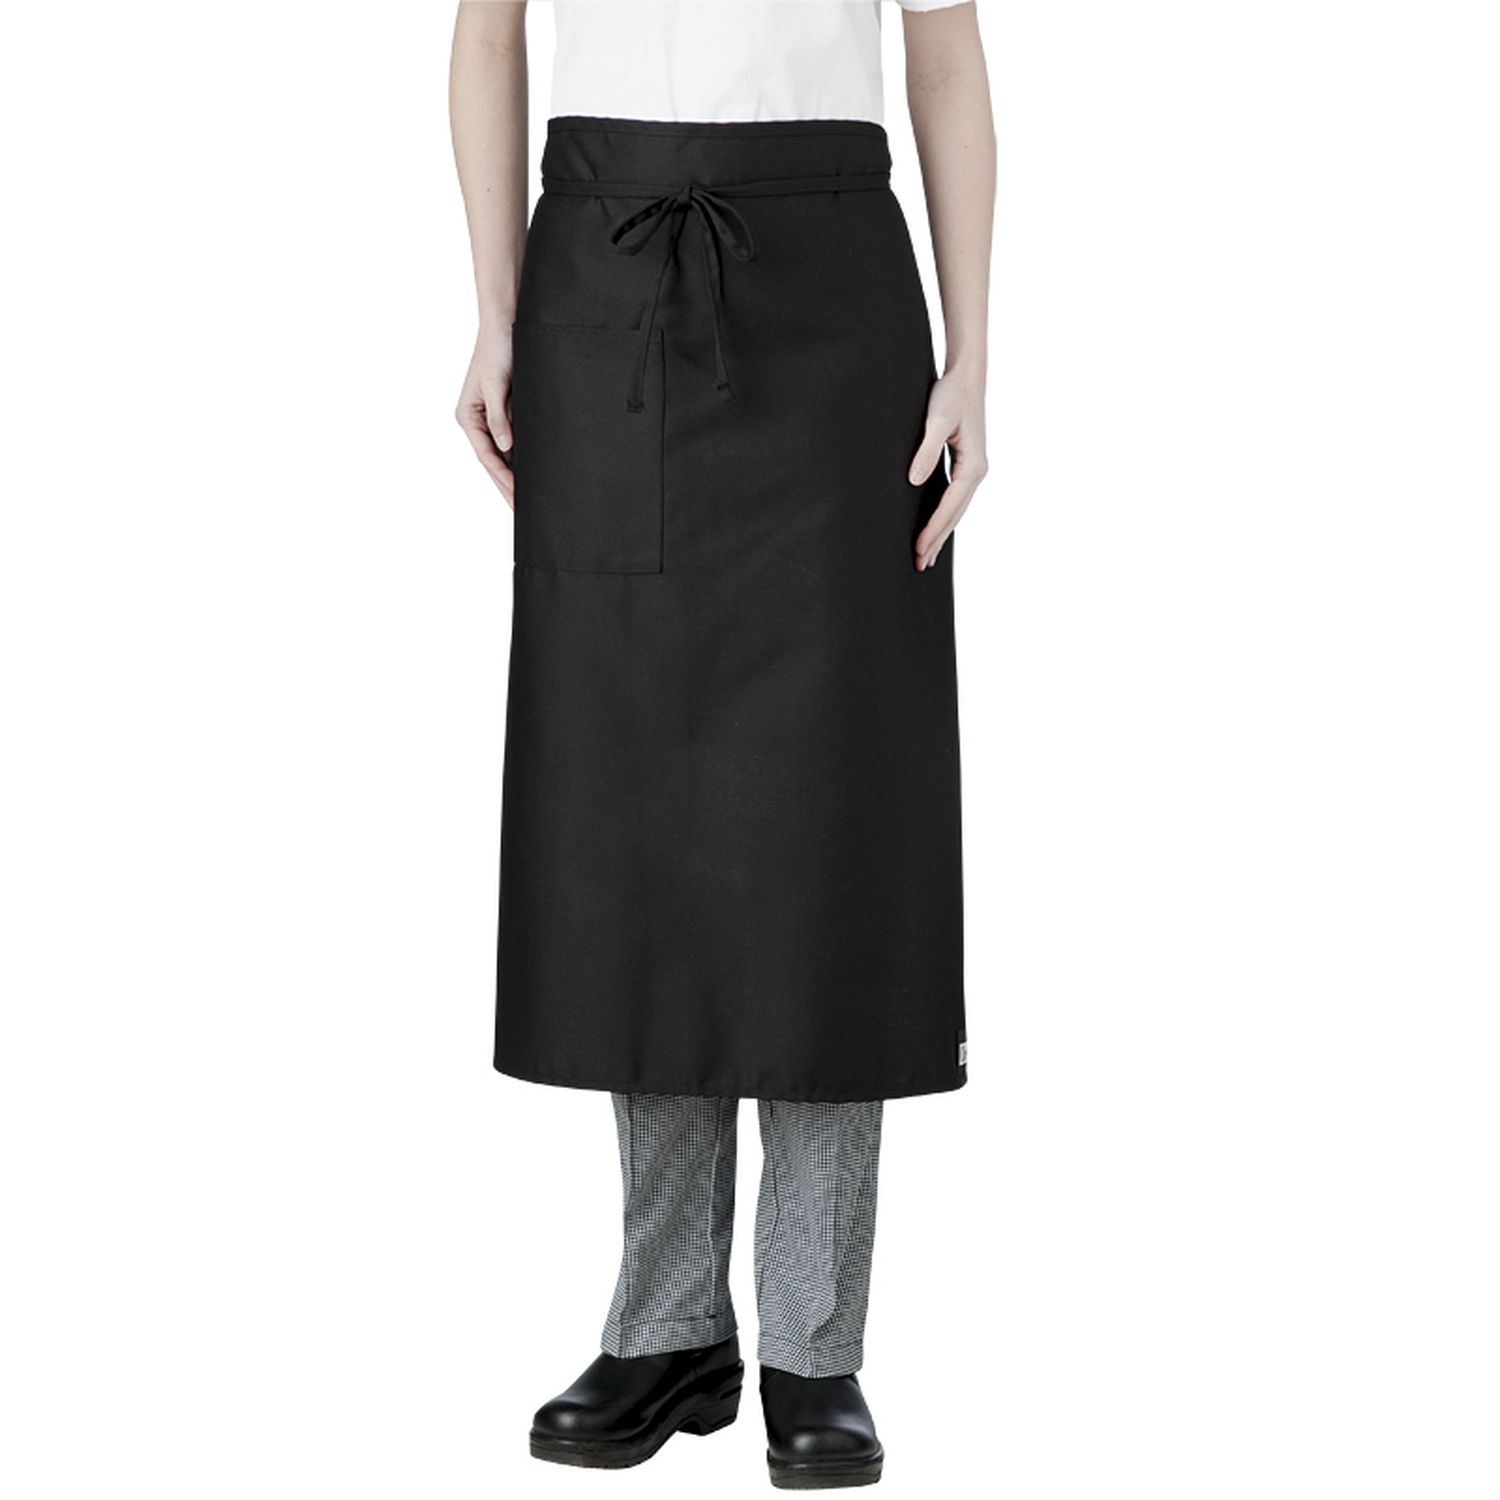 1-Pocket Long-Waist Bistro Apron (minimum 6 per order)-Chefwear